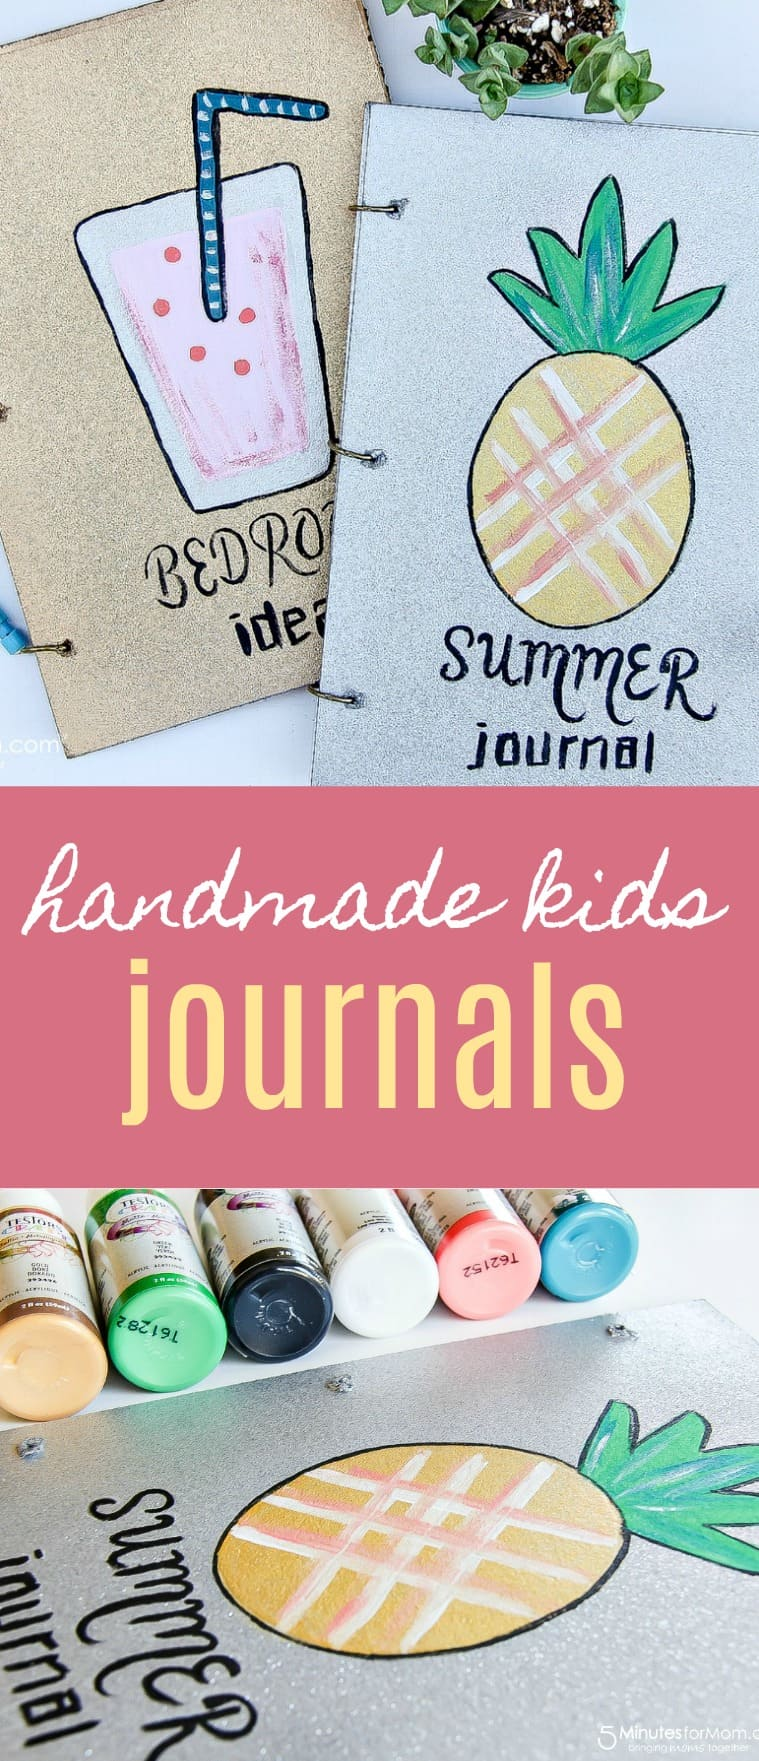 Handmade Journals - Kids Will Love These Summer themed DIY Journals